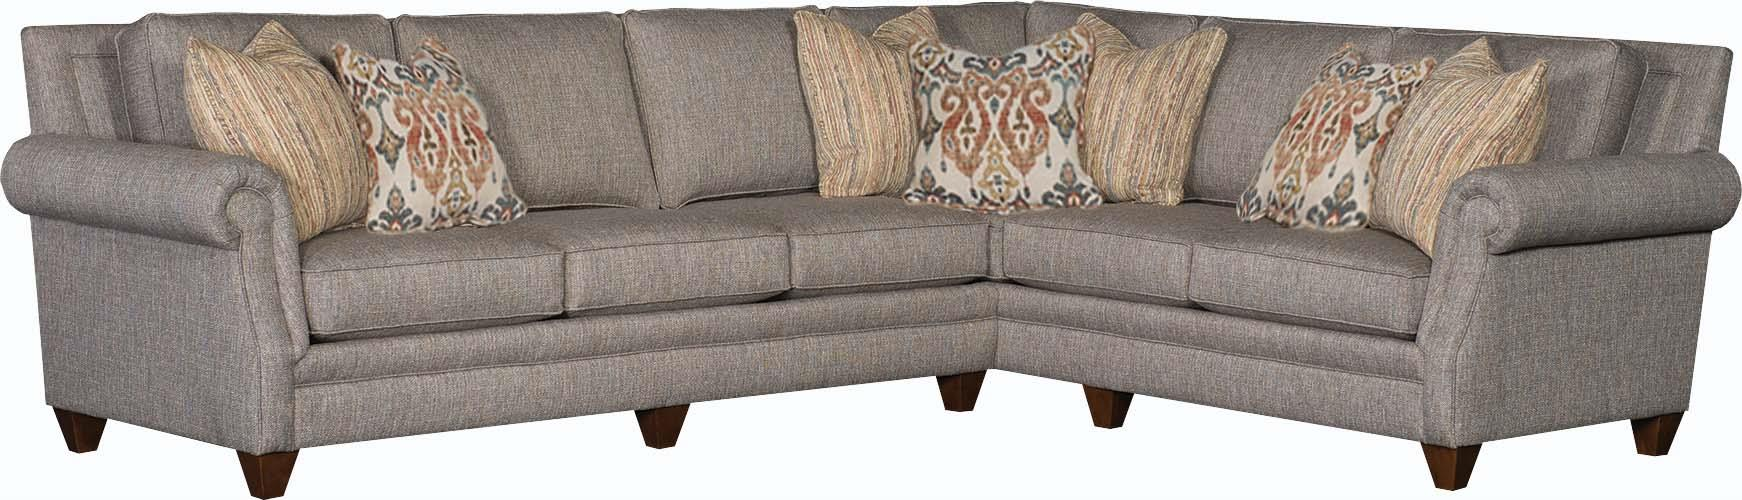 Mayo Desiree 2 Piece Sectional - Item Number: MAYO-GRP-9000-SECTIONAL